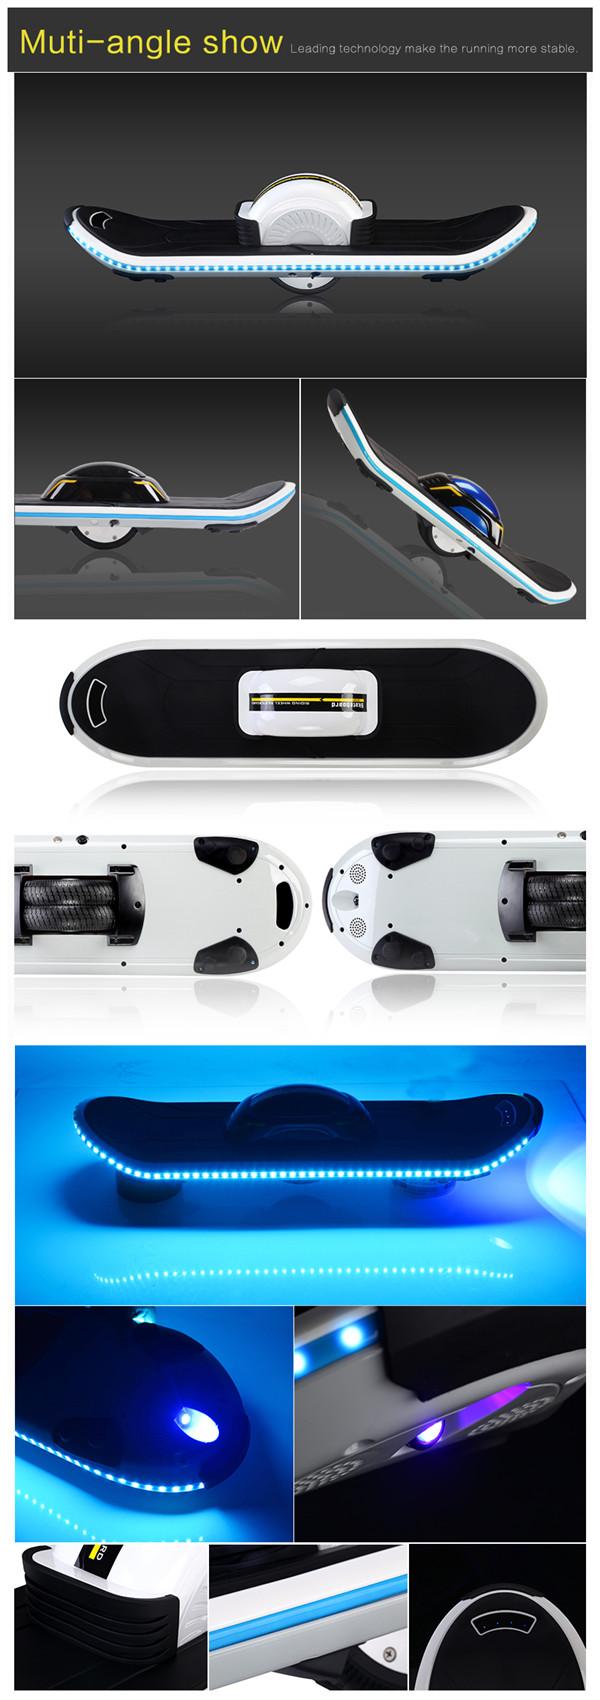 Smart Onewheel The Self - Balancing Electric Skateboard With Bluetooth Speaker